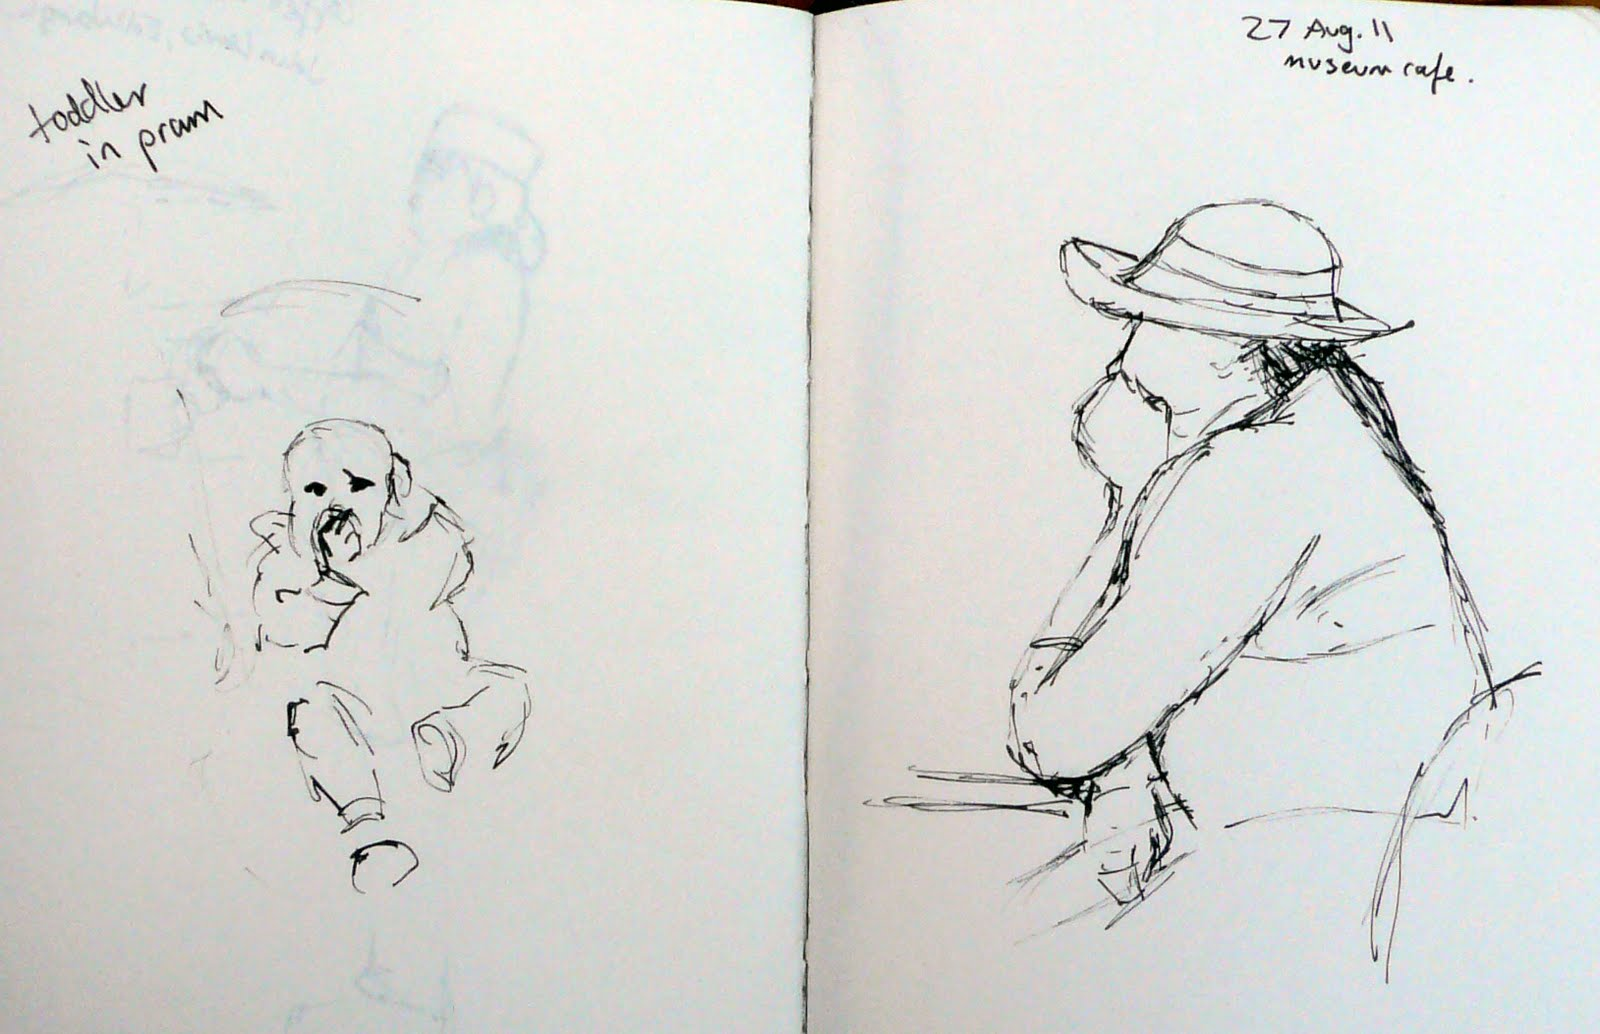 Museum Cafe Sketches